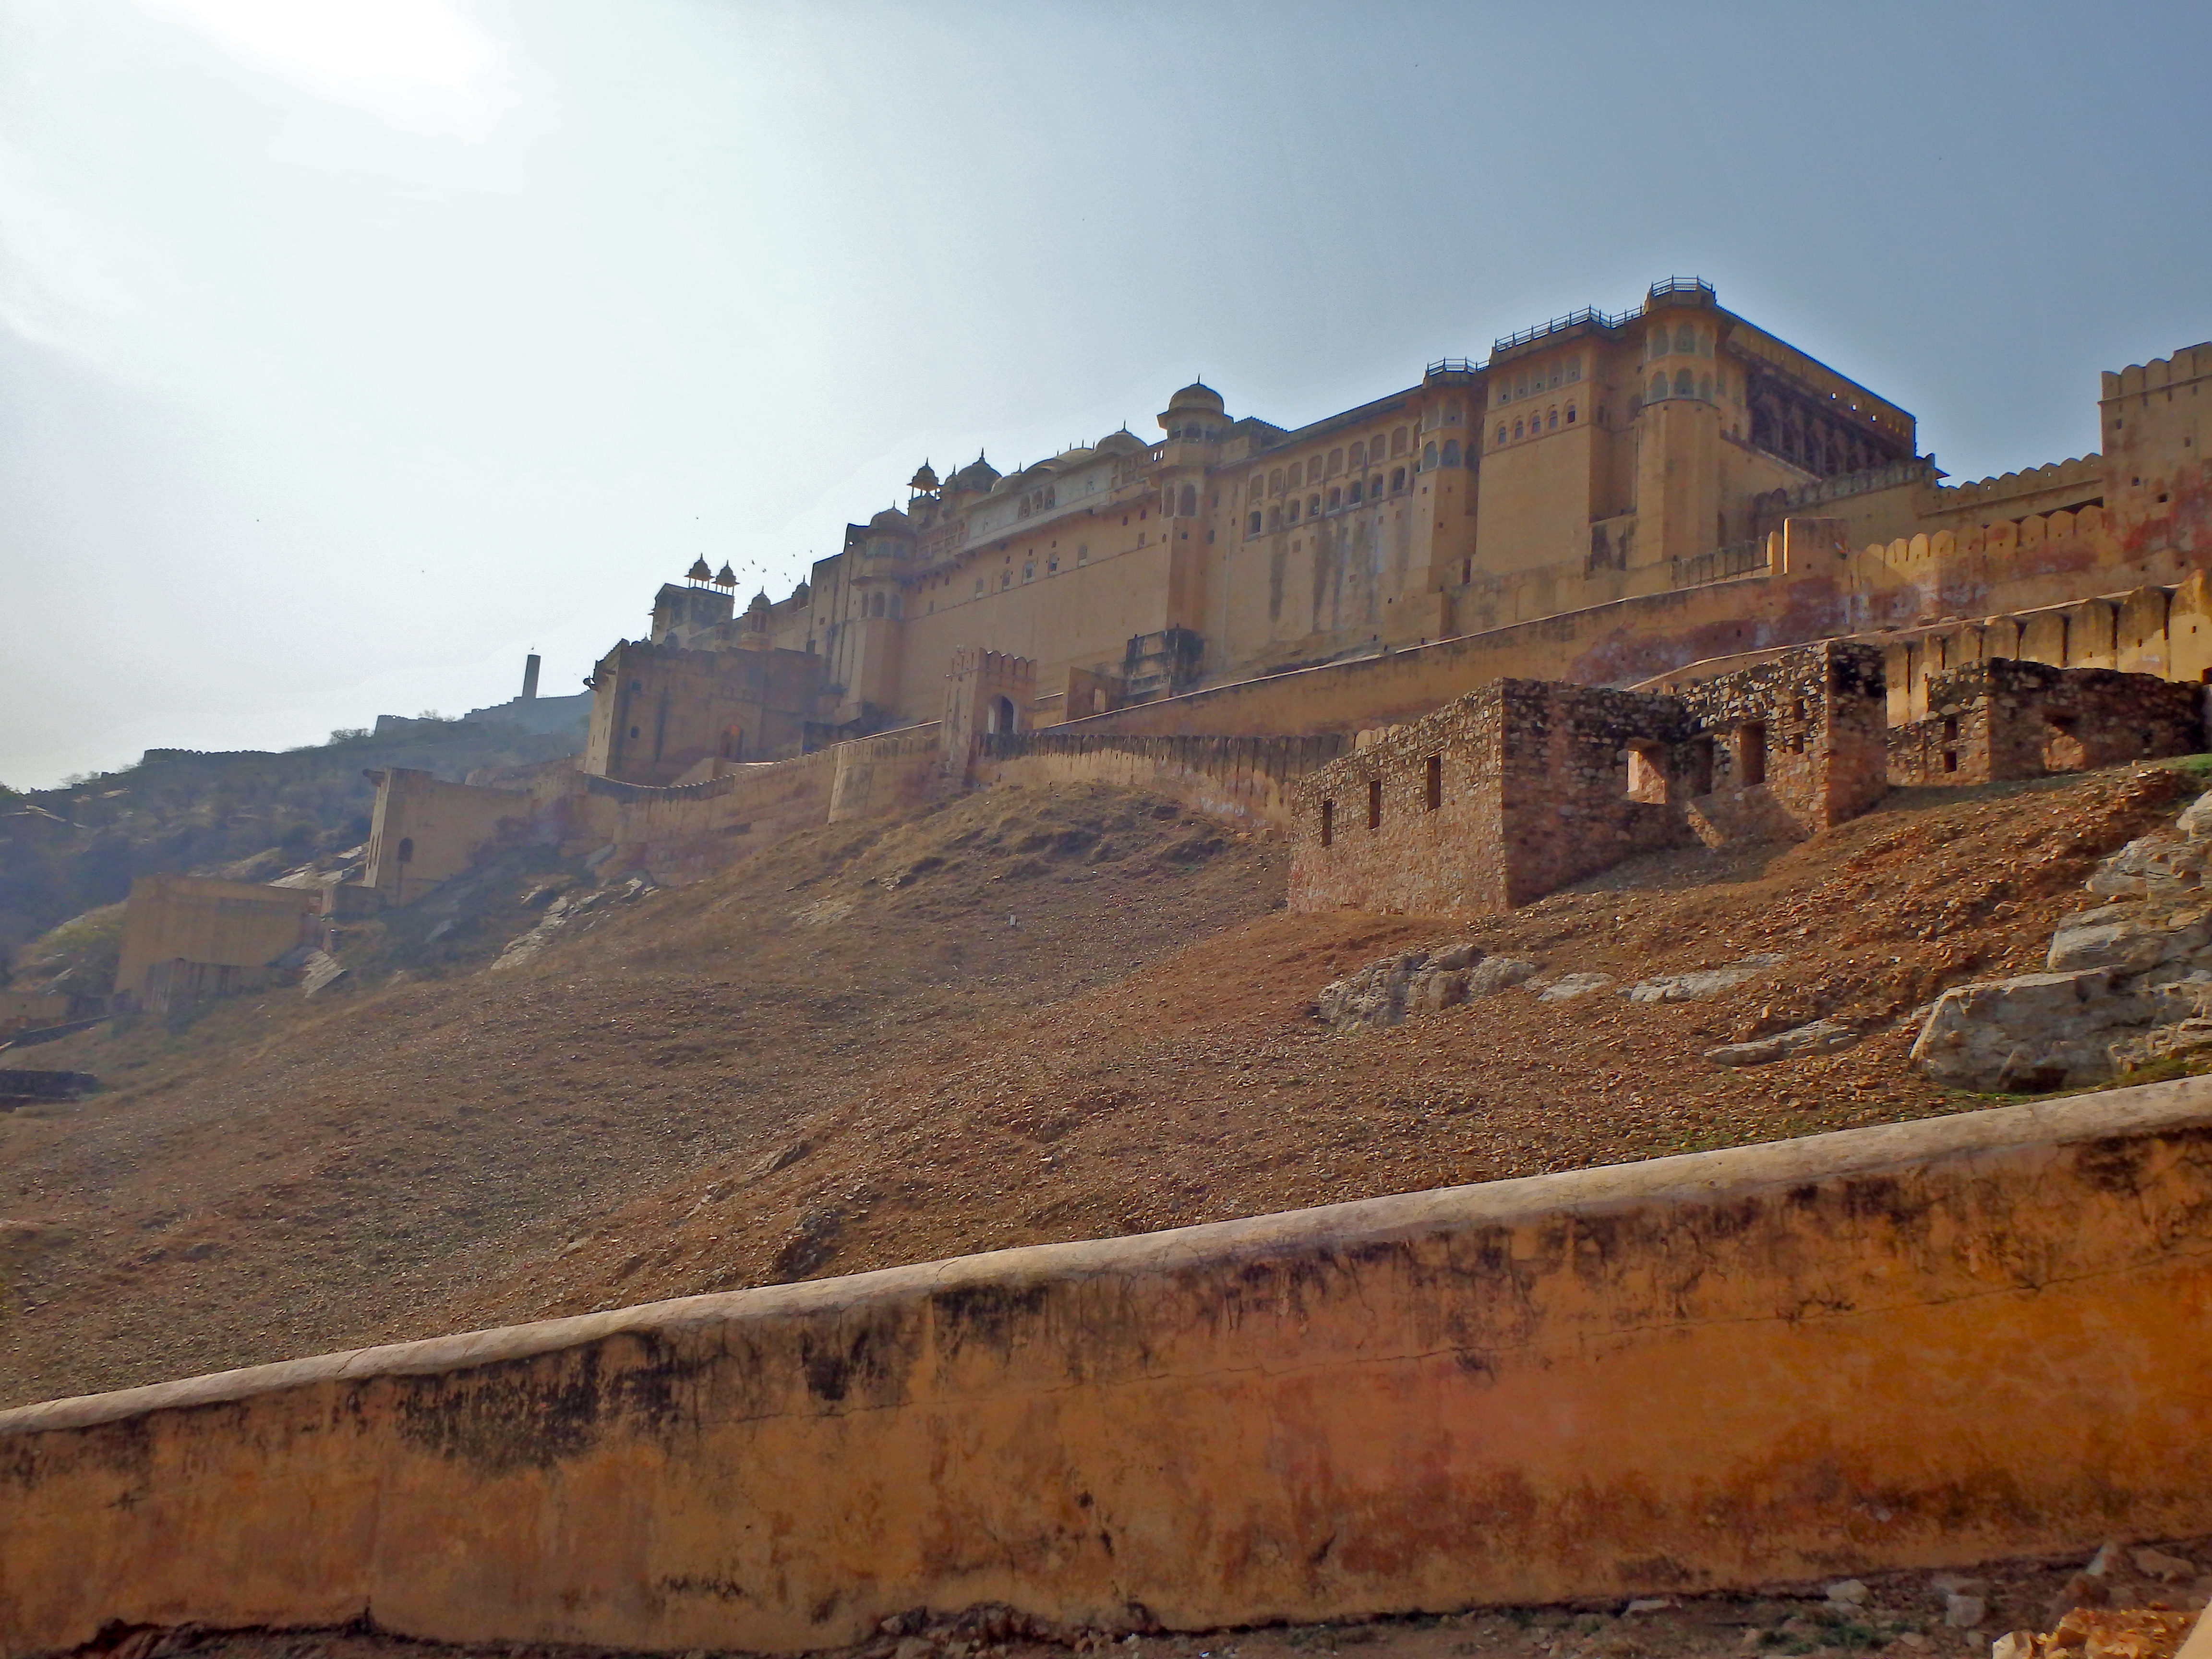 The Amber Fort Jaipur, India forts open to the public what fort to visit in india where is the amber fort travel blog